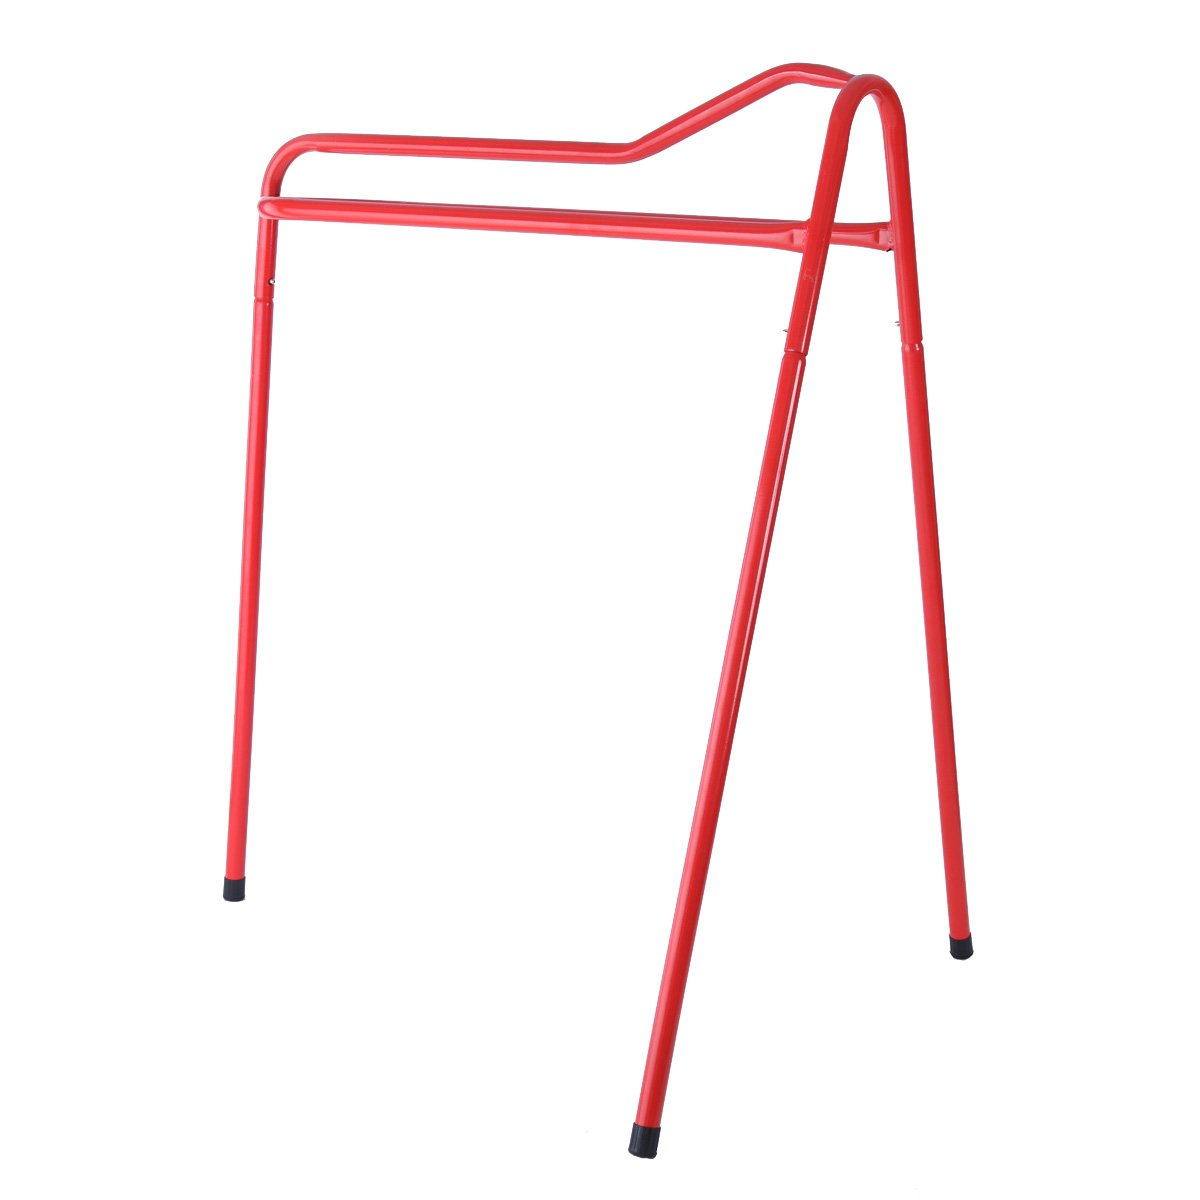 Strong Steel Transportation Detachable Legs Shires Collapsible Saddle Stand